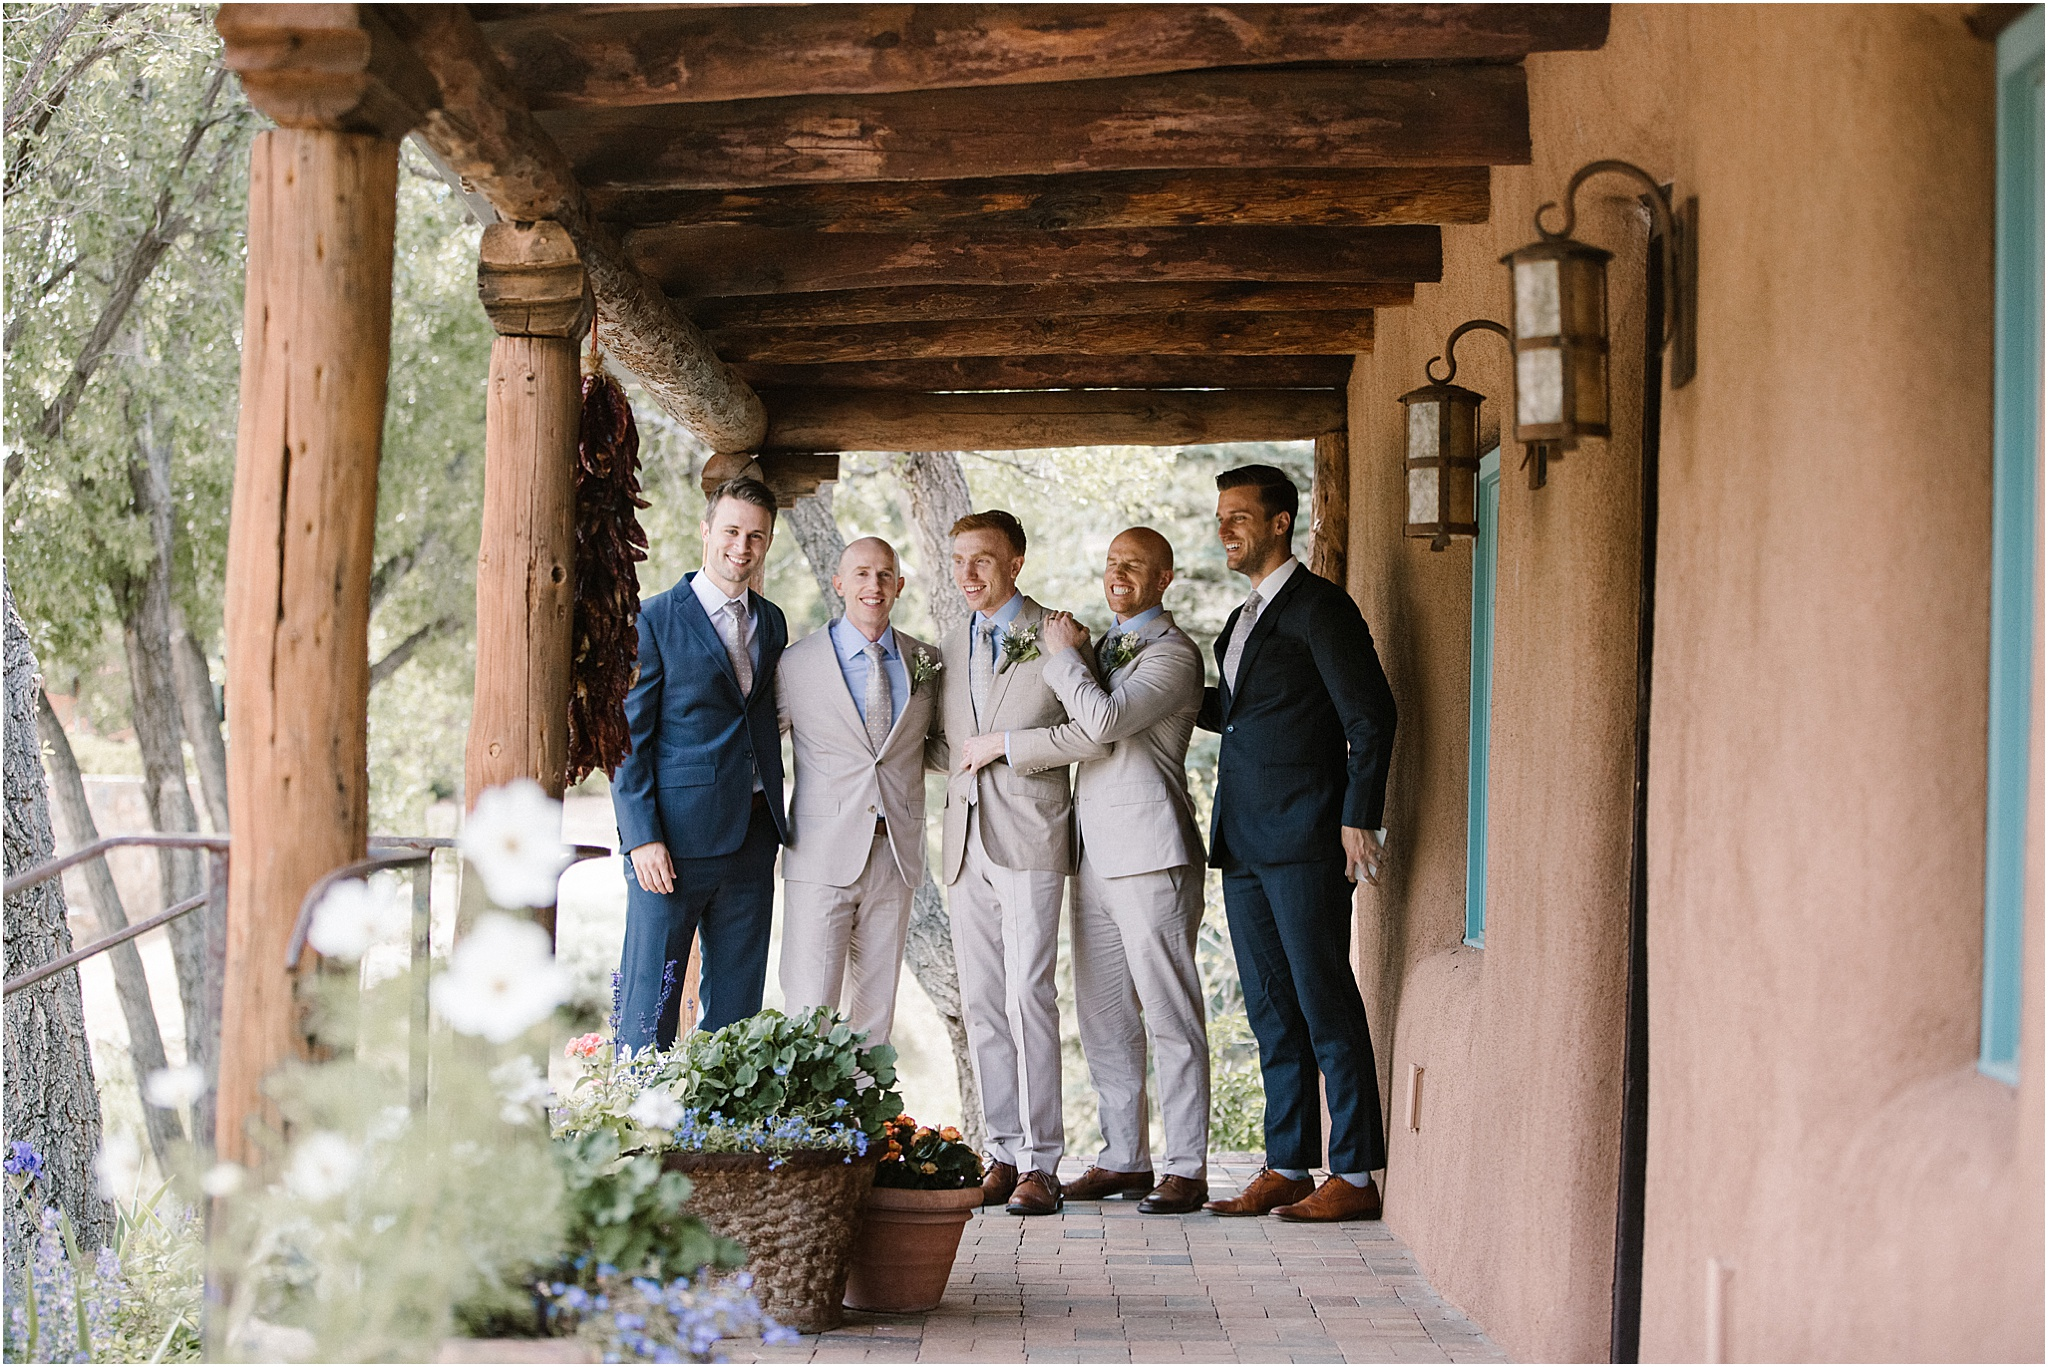 AMELIA_JASON_SANTA FE_ WEDDING_BLUE ROSE PHOTOGRAPHY46